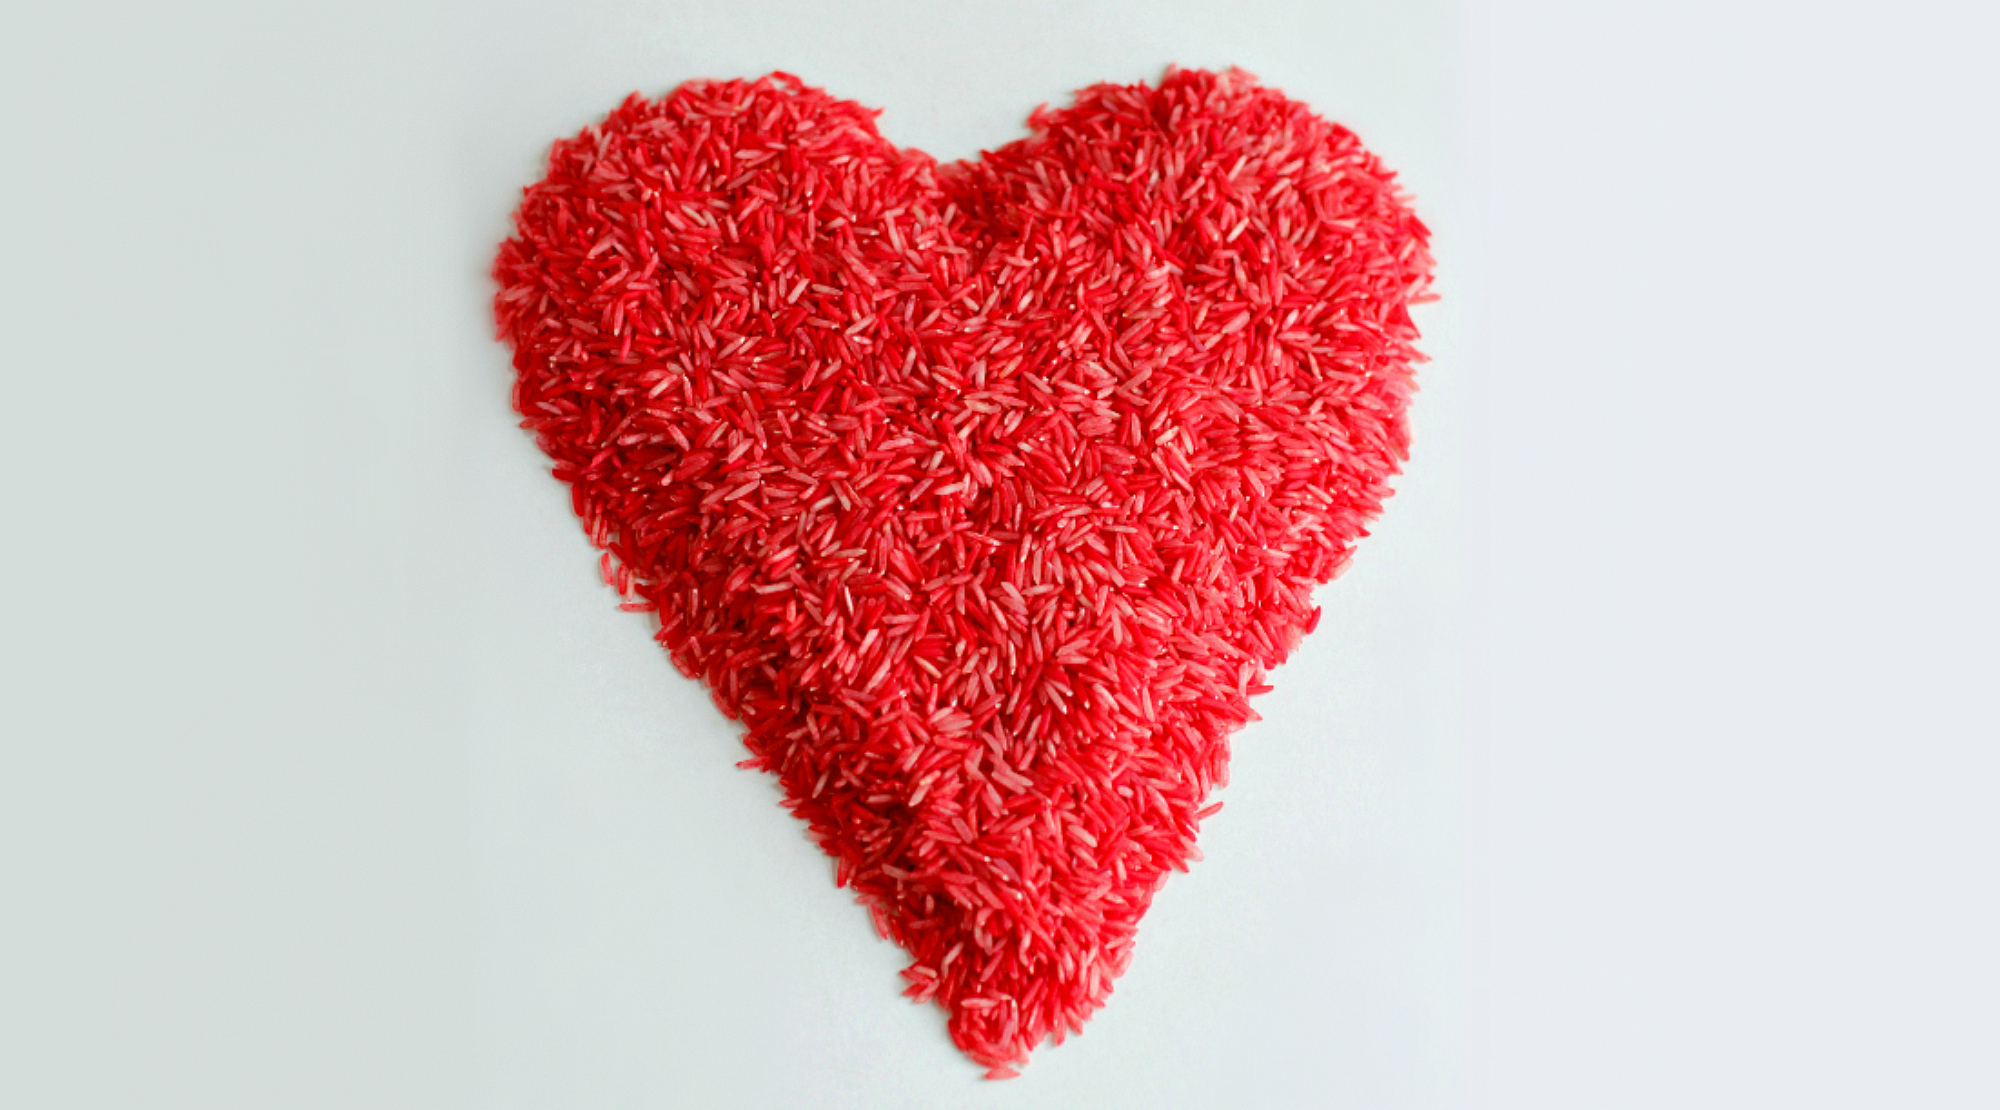 Make Red Colored Rice for Valentines Day